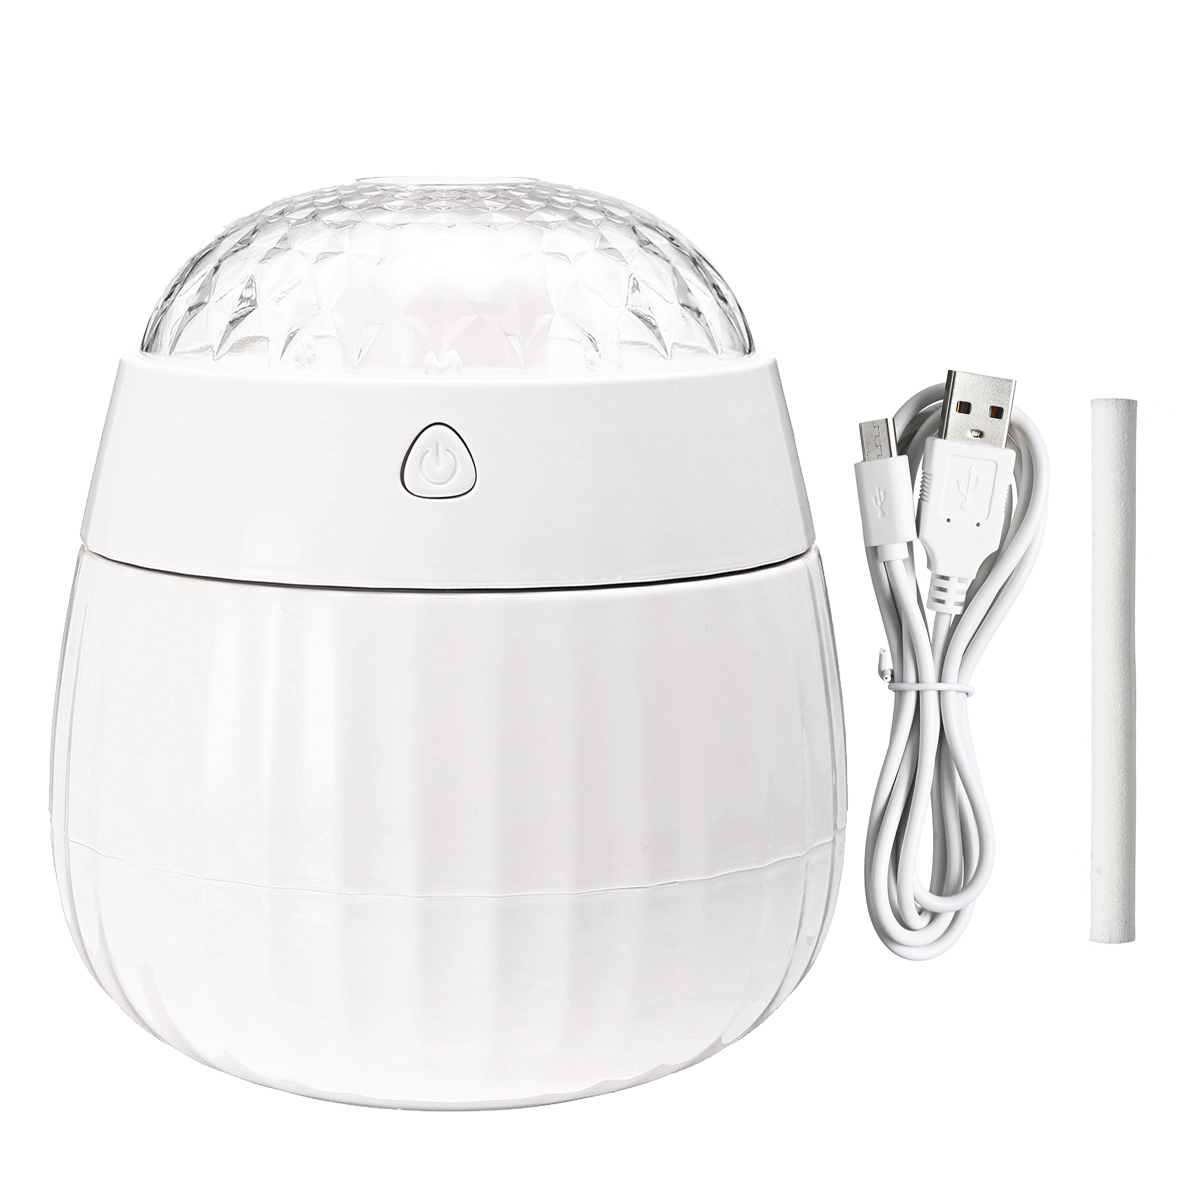 380ML Ultrasonic Humidifier Air Purifier Aroma Diffuser Room Nebulizer LED Lamp